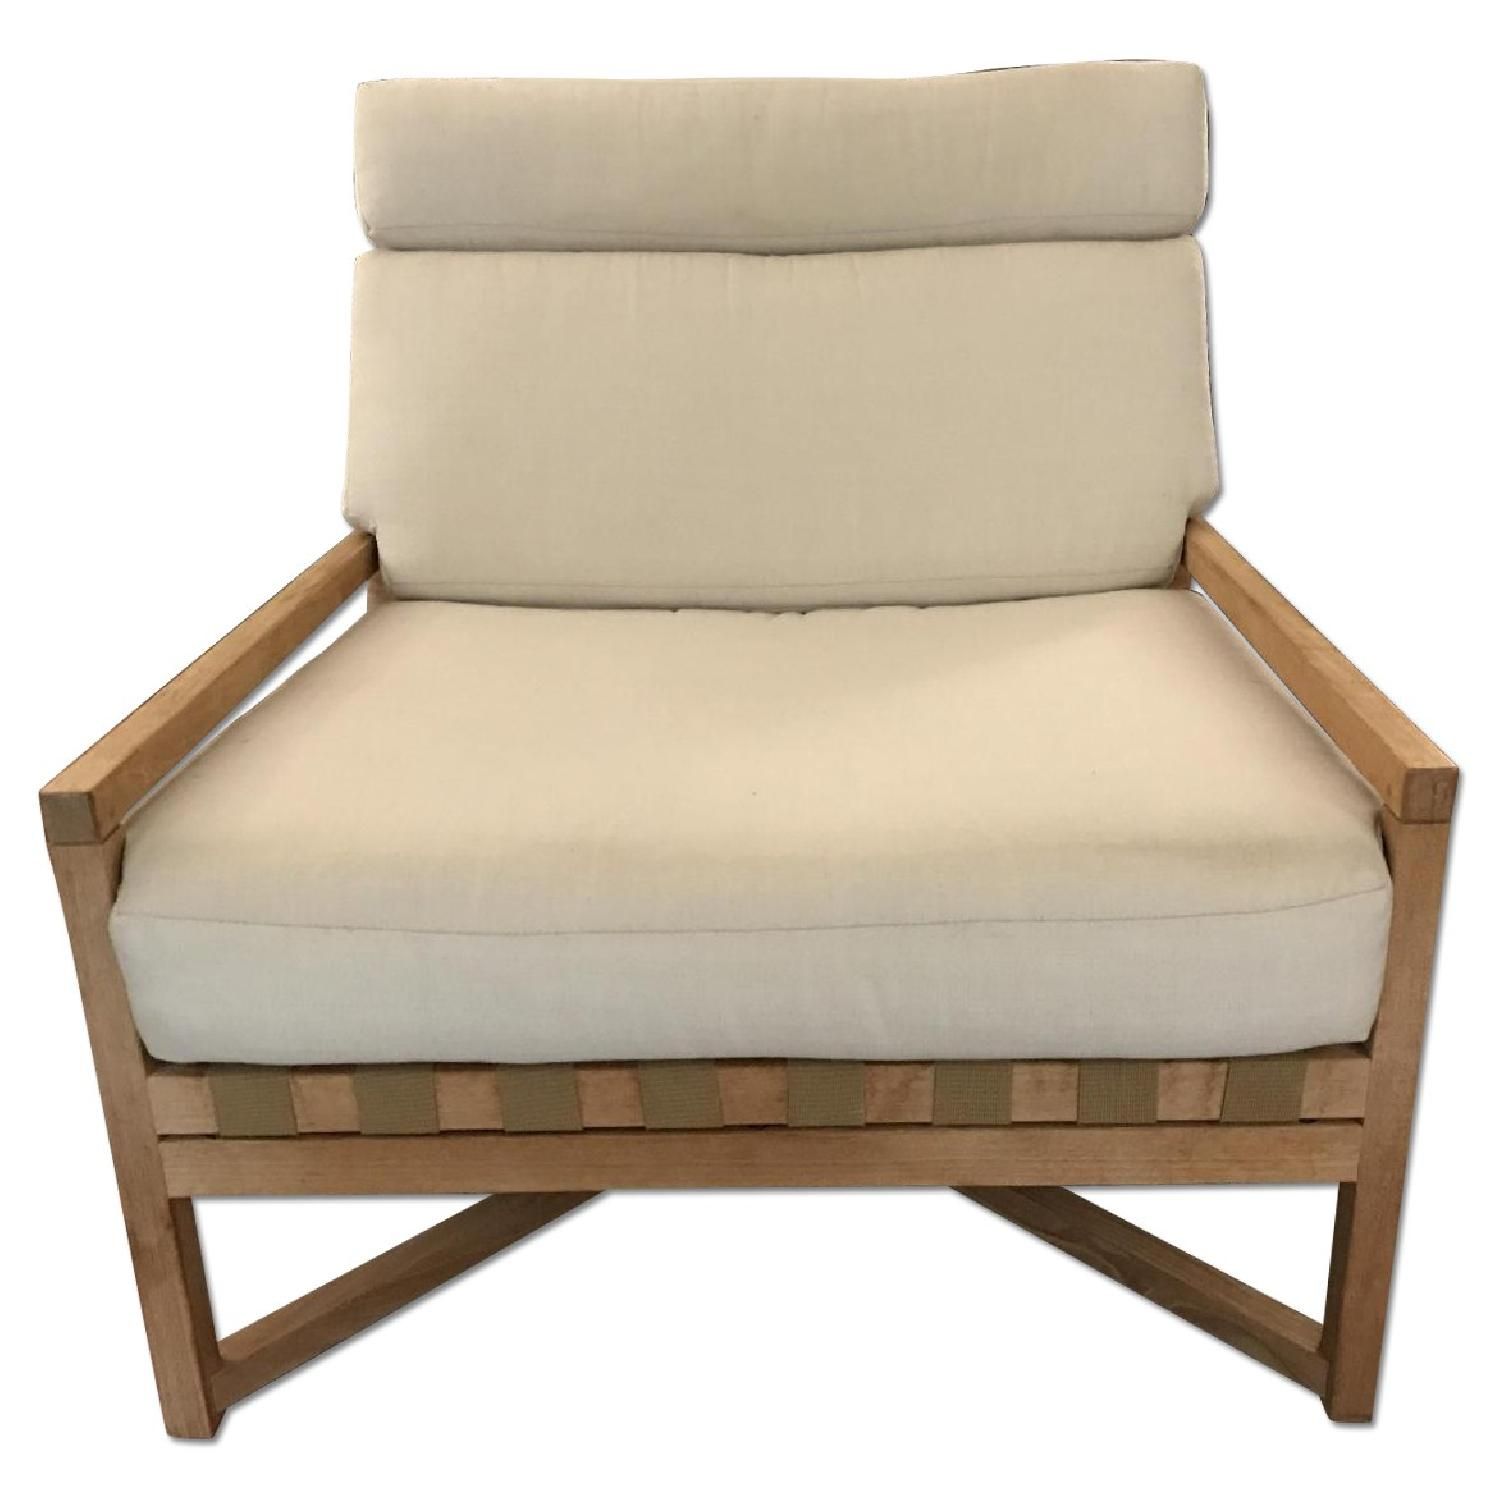 Design Within Reach Outdoor/Indoor Rusa Teak Club Chair - image-0